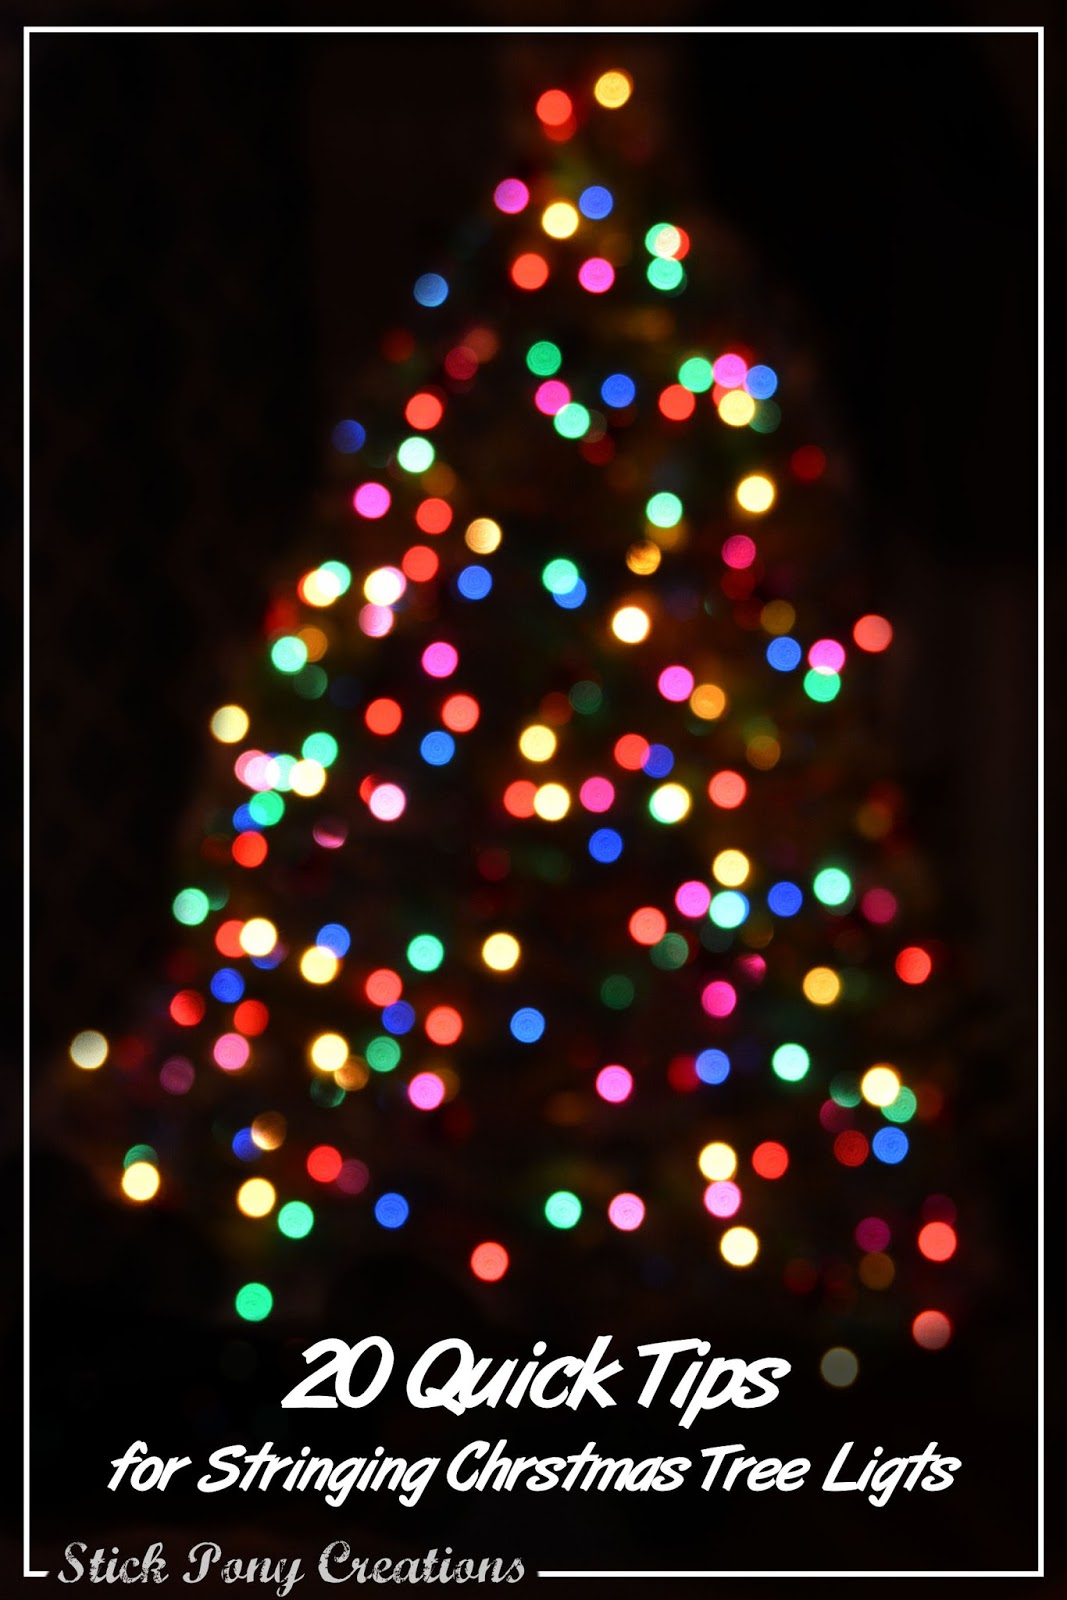 20 things you should know before you put lights on your christmas tree tistheseason - Best Way To Put Christmas Lights On Tree